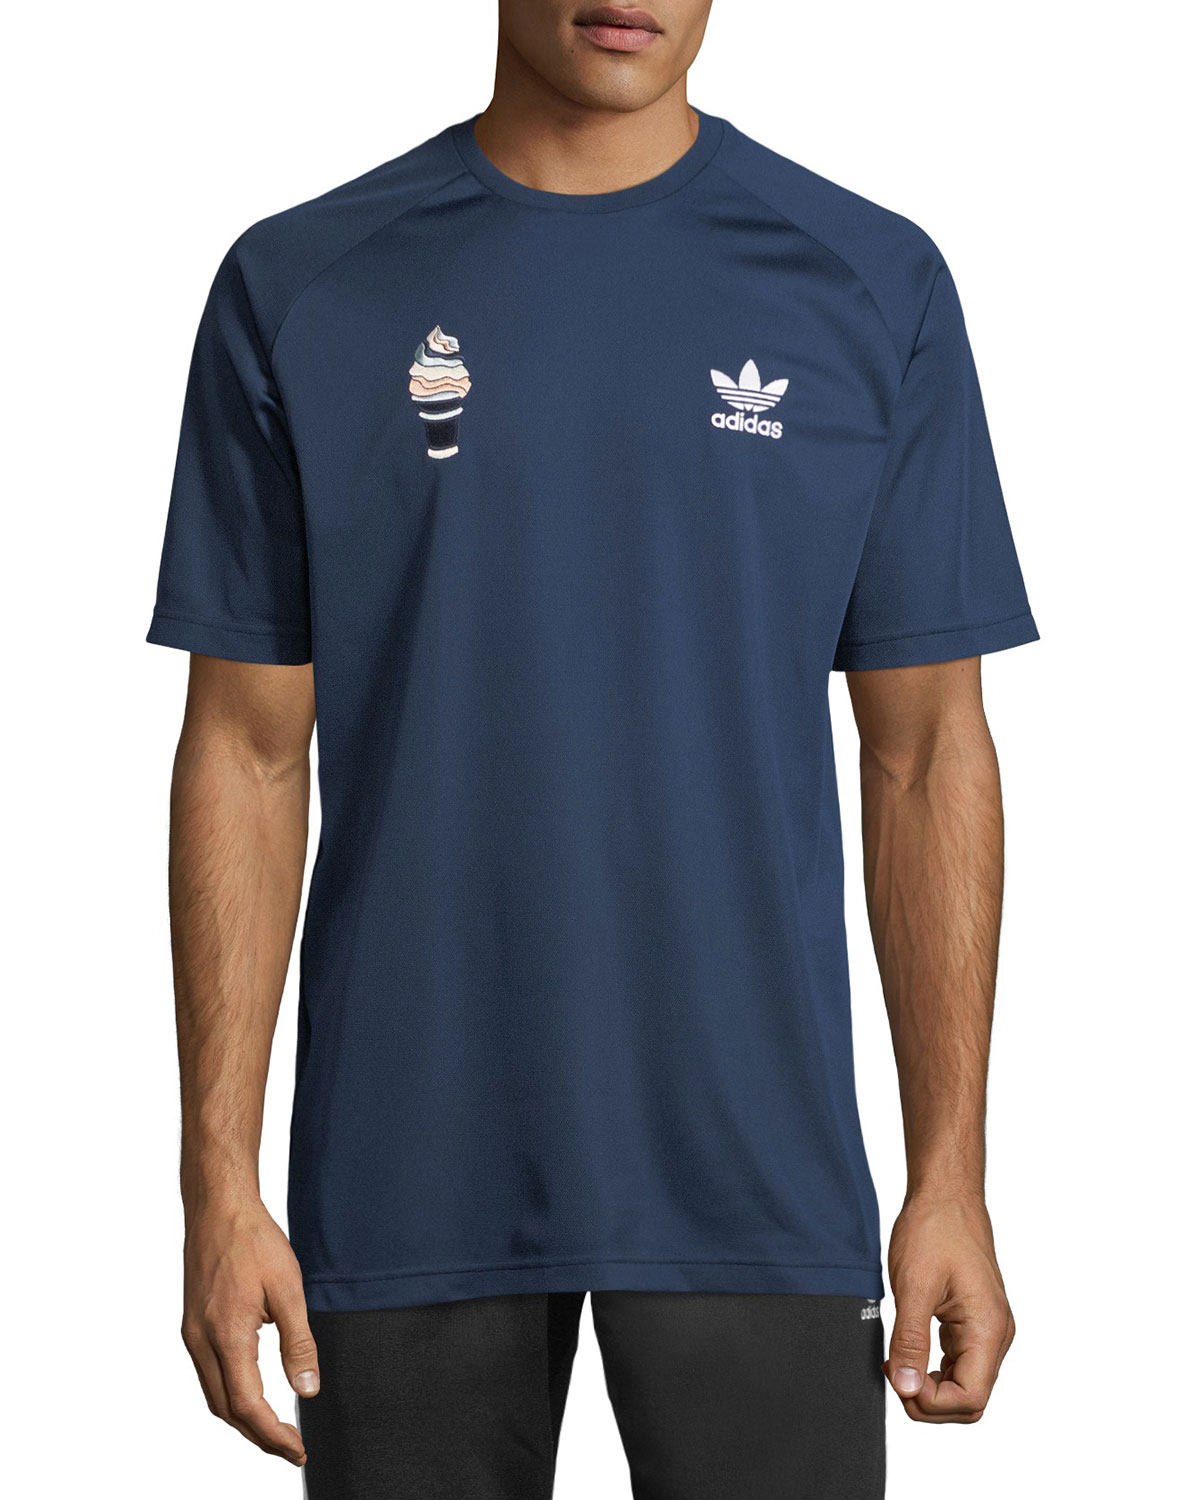 adidas ice cream Off 58% nutechproducts.in